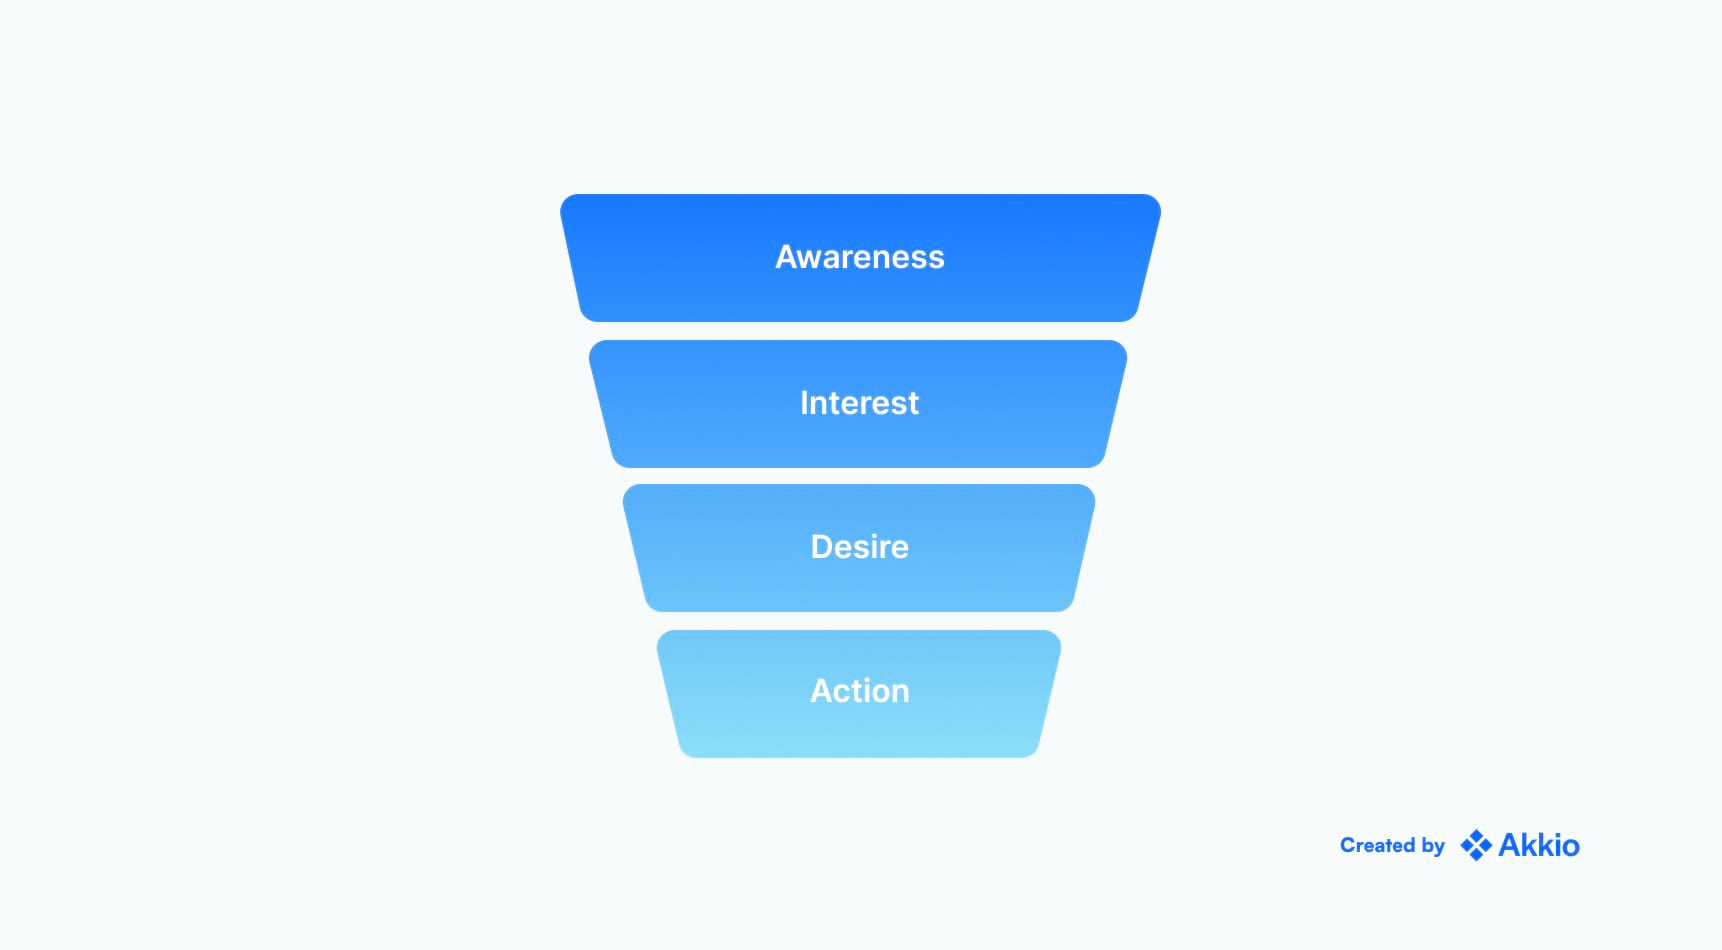 A visual depiction of a sales funnel with four stages: Awareness, interest, desire, and action.